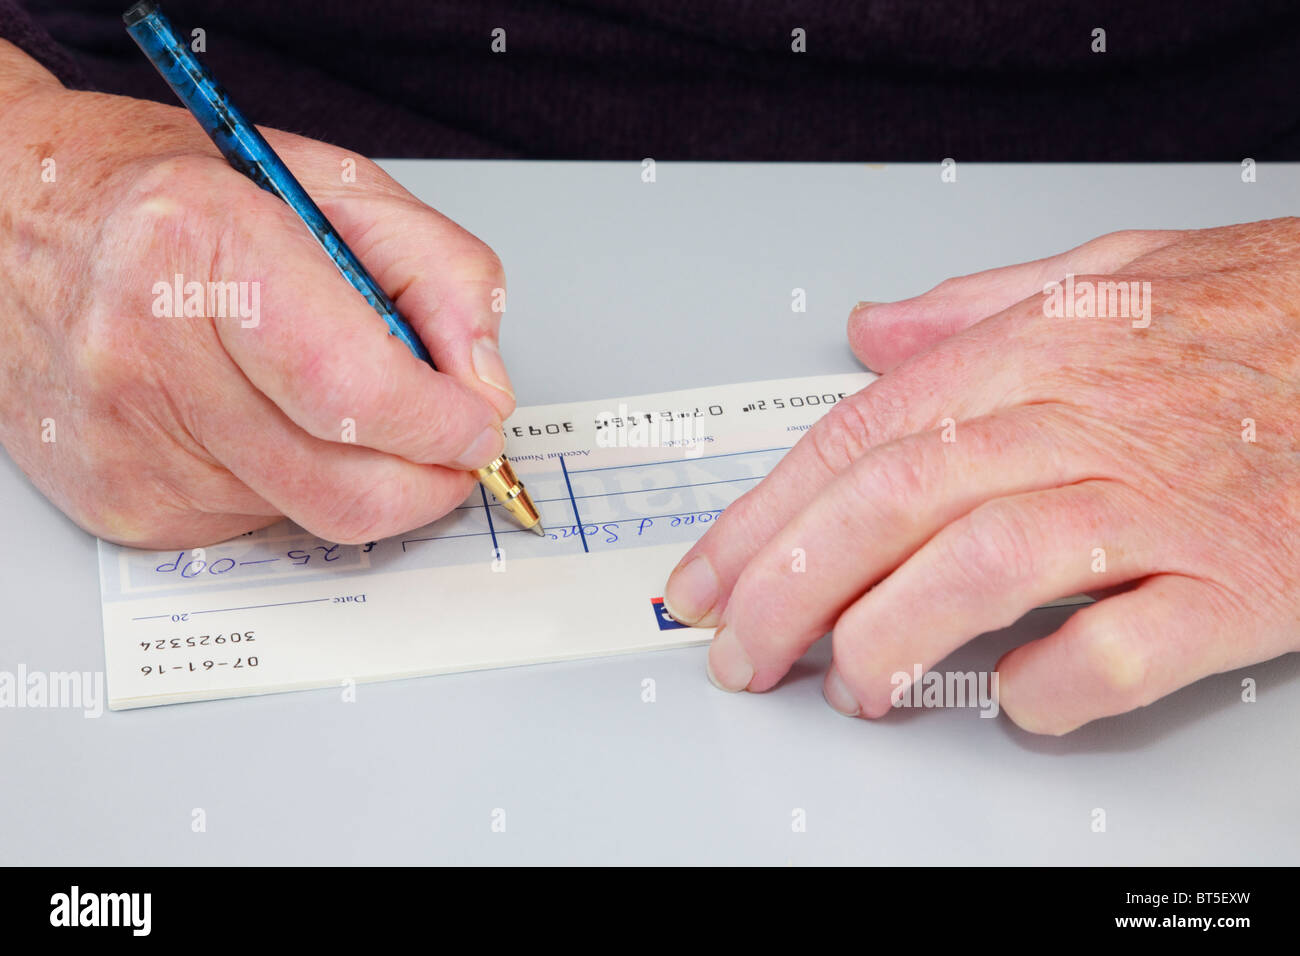 Close-up of a senior elderly woman pensioner writing a cheque (check) to pay a bill. England, UK, Britain. - Stock Image